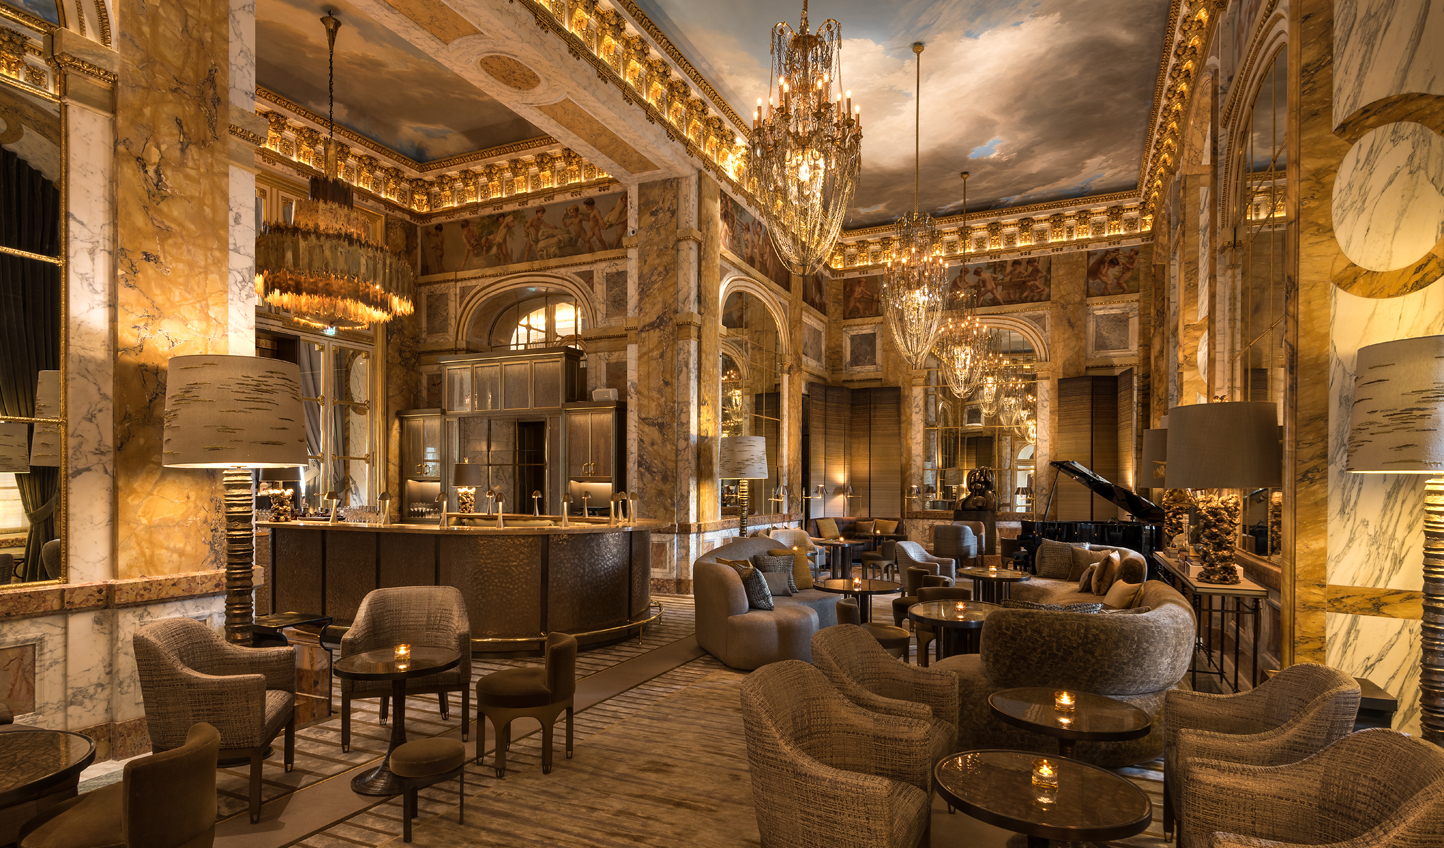 Parisian grandeur at Hotel de Crillon